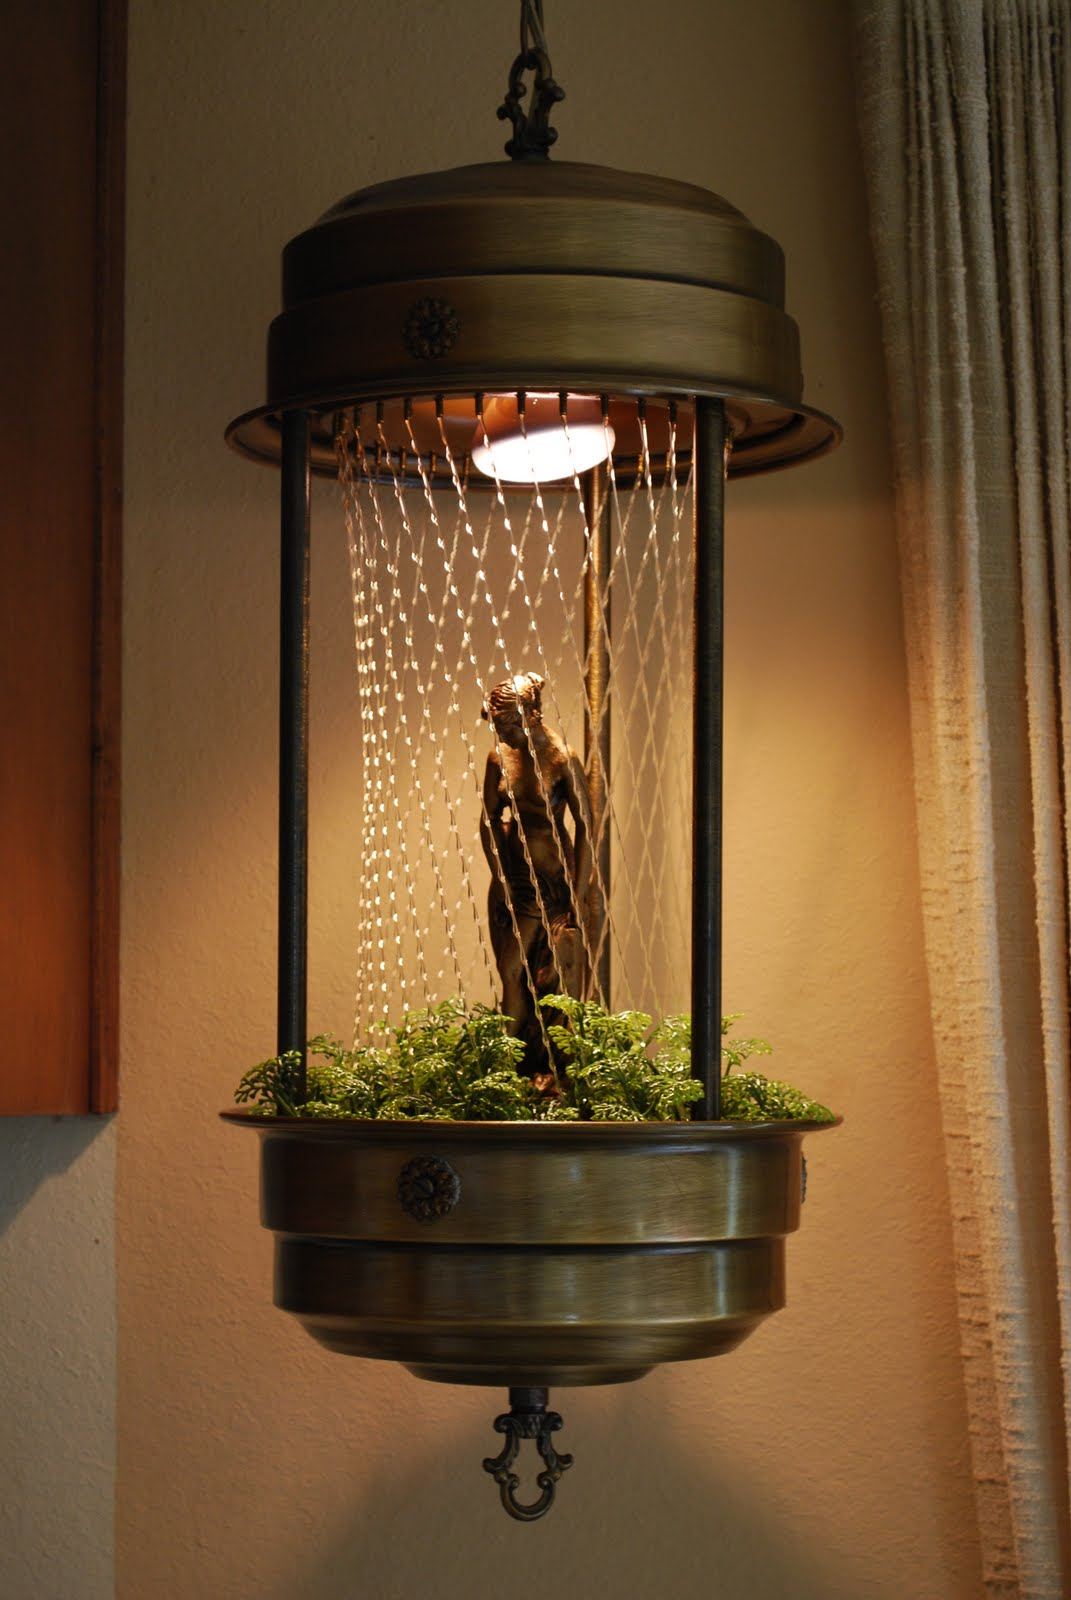 Hanging Rain Lamp | www.imgkid.com - The Image Kid Has It!